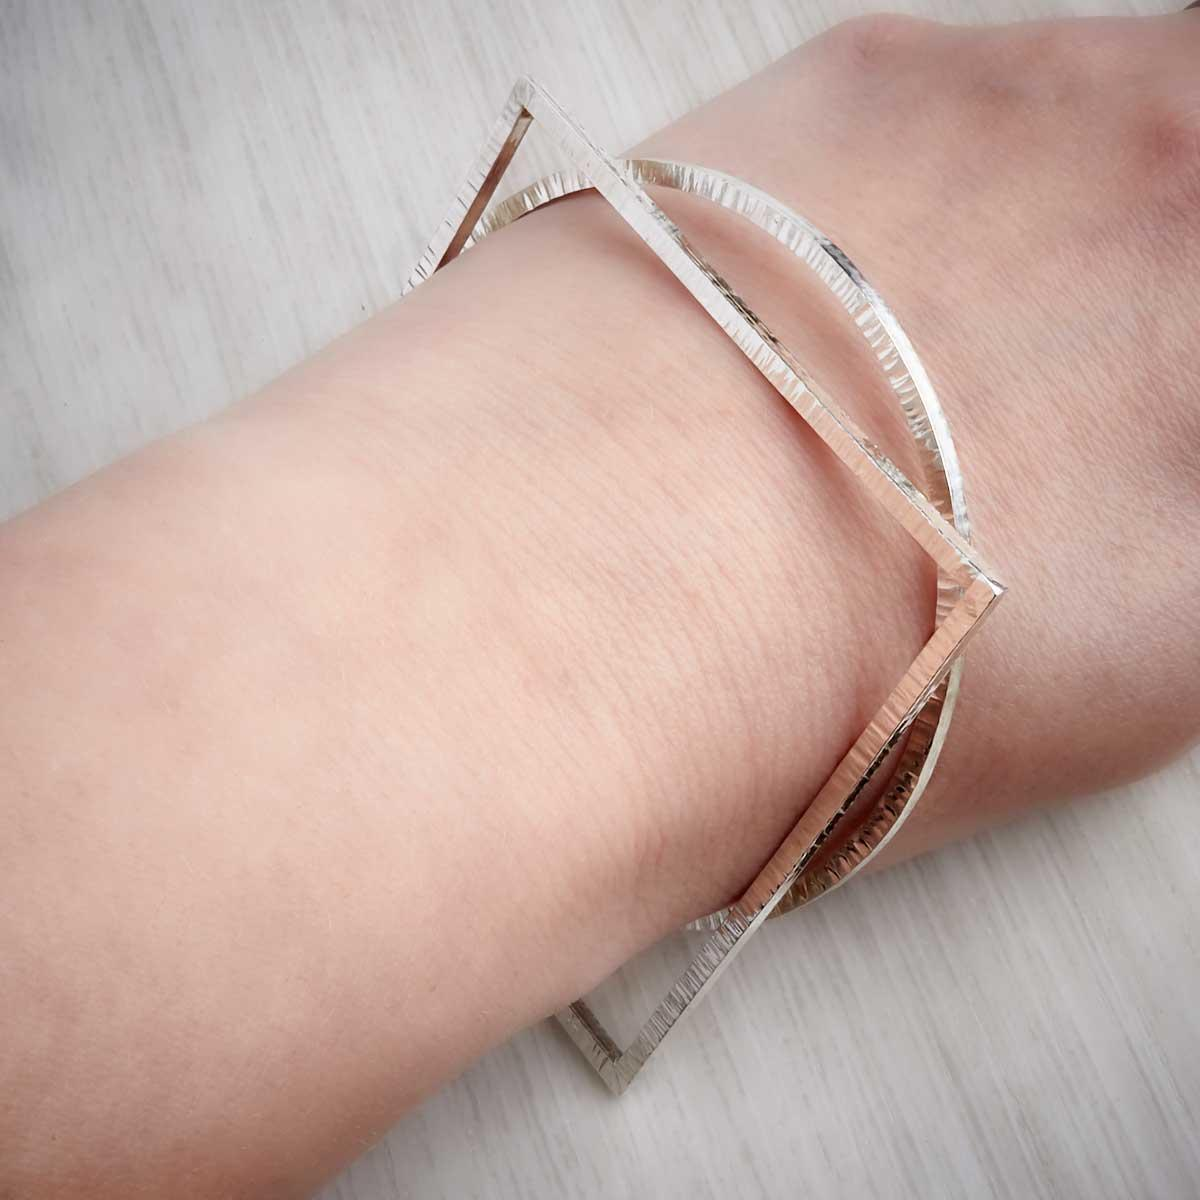 Contemporary handmade silver bangle stack by Emma White. Image property of THE JEWELLERY MAKERS.